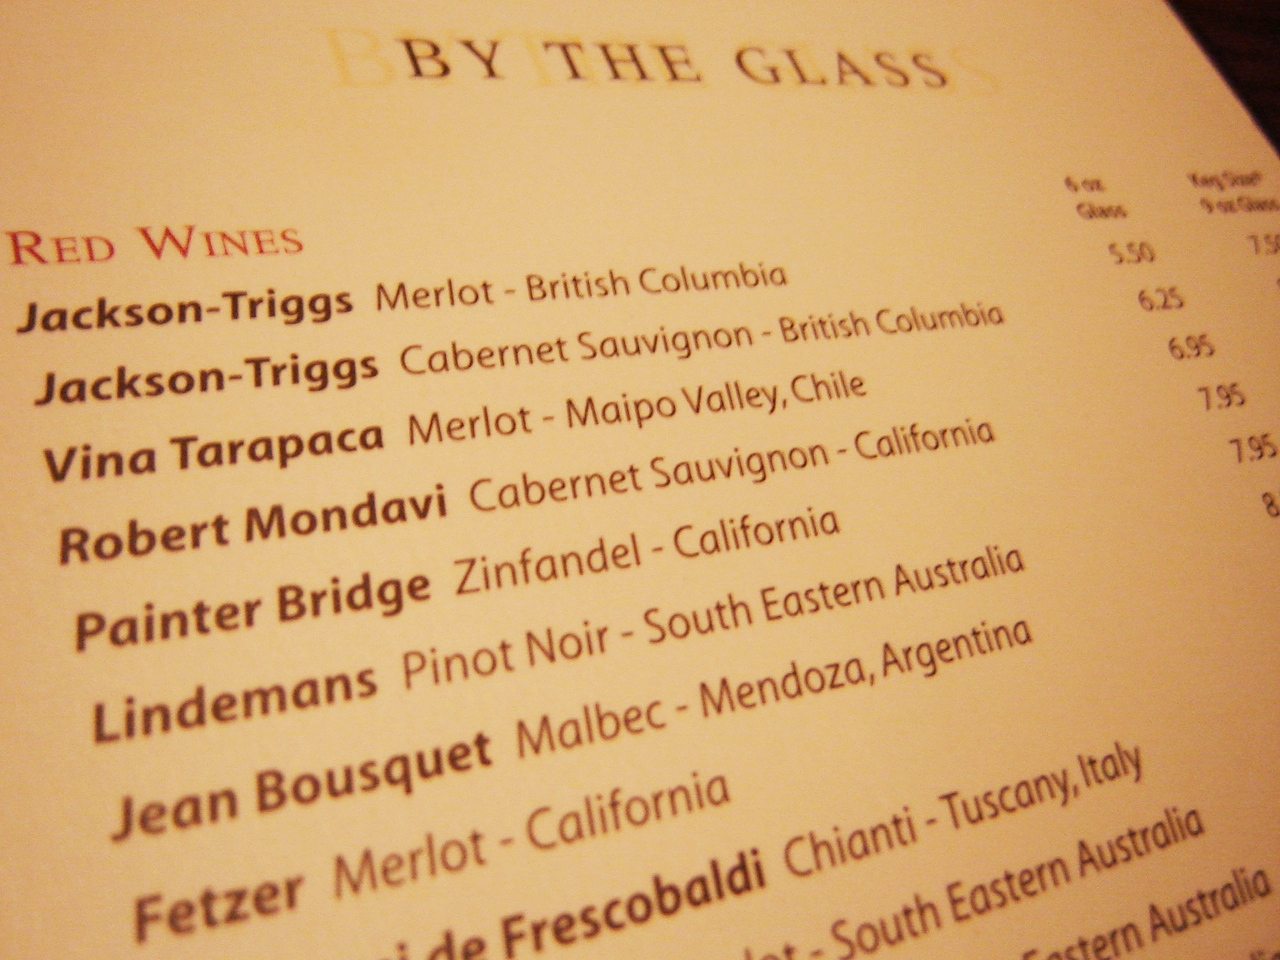 List of Wines on a Restaurant Menu